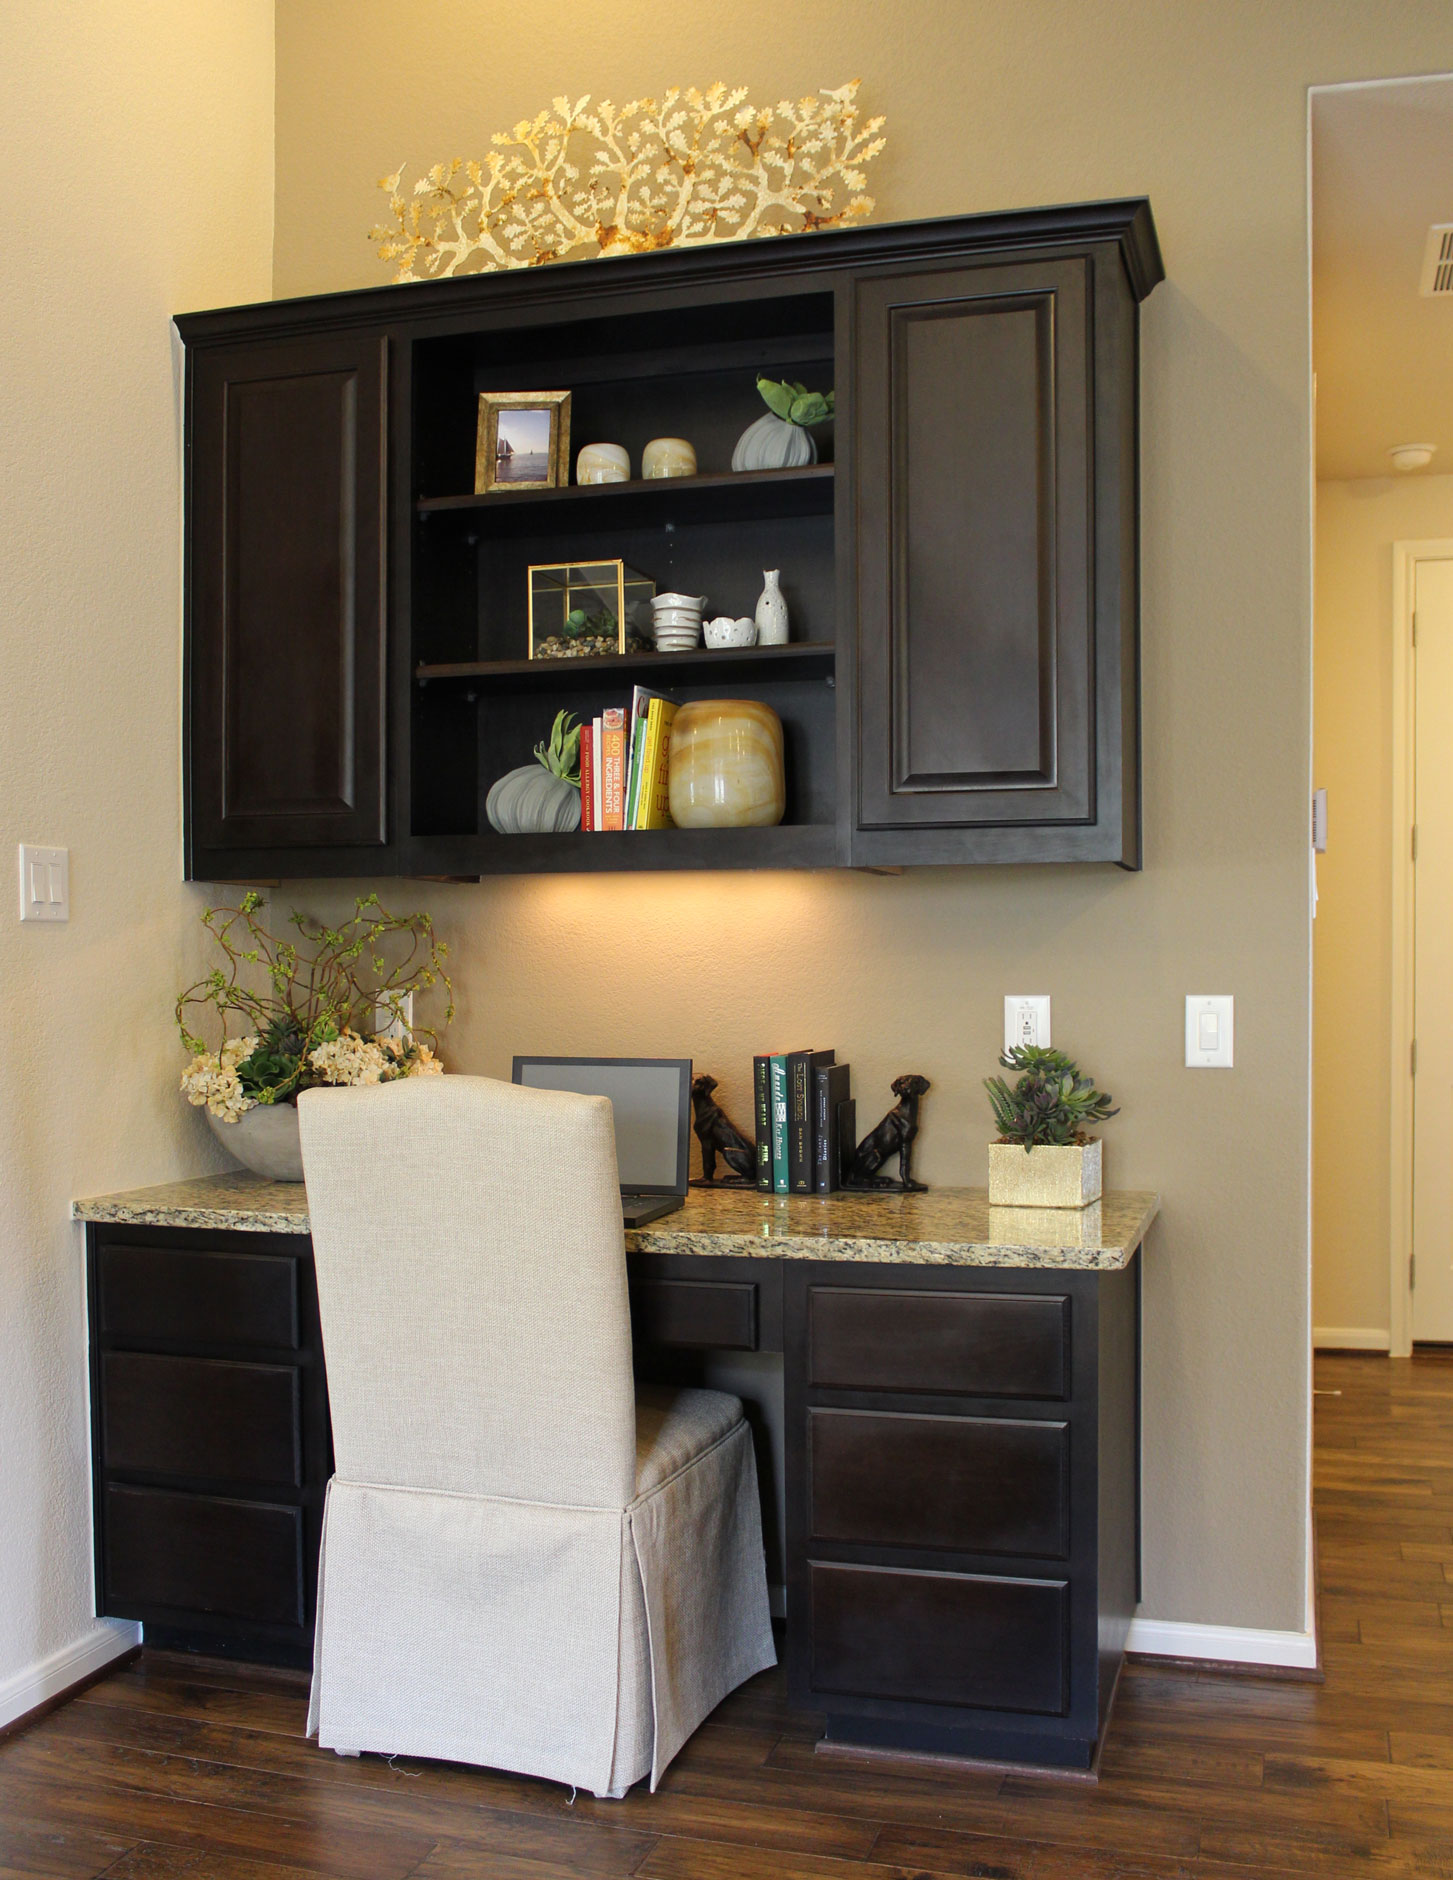 Built in desk with raised panel doors by TaylorCraft Cabinet Door Company